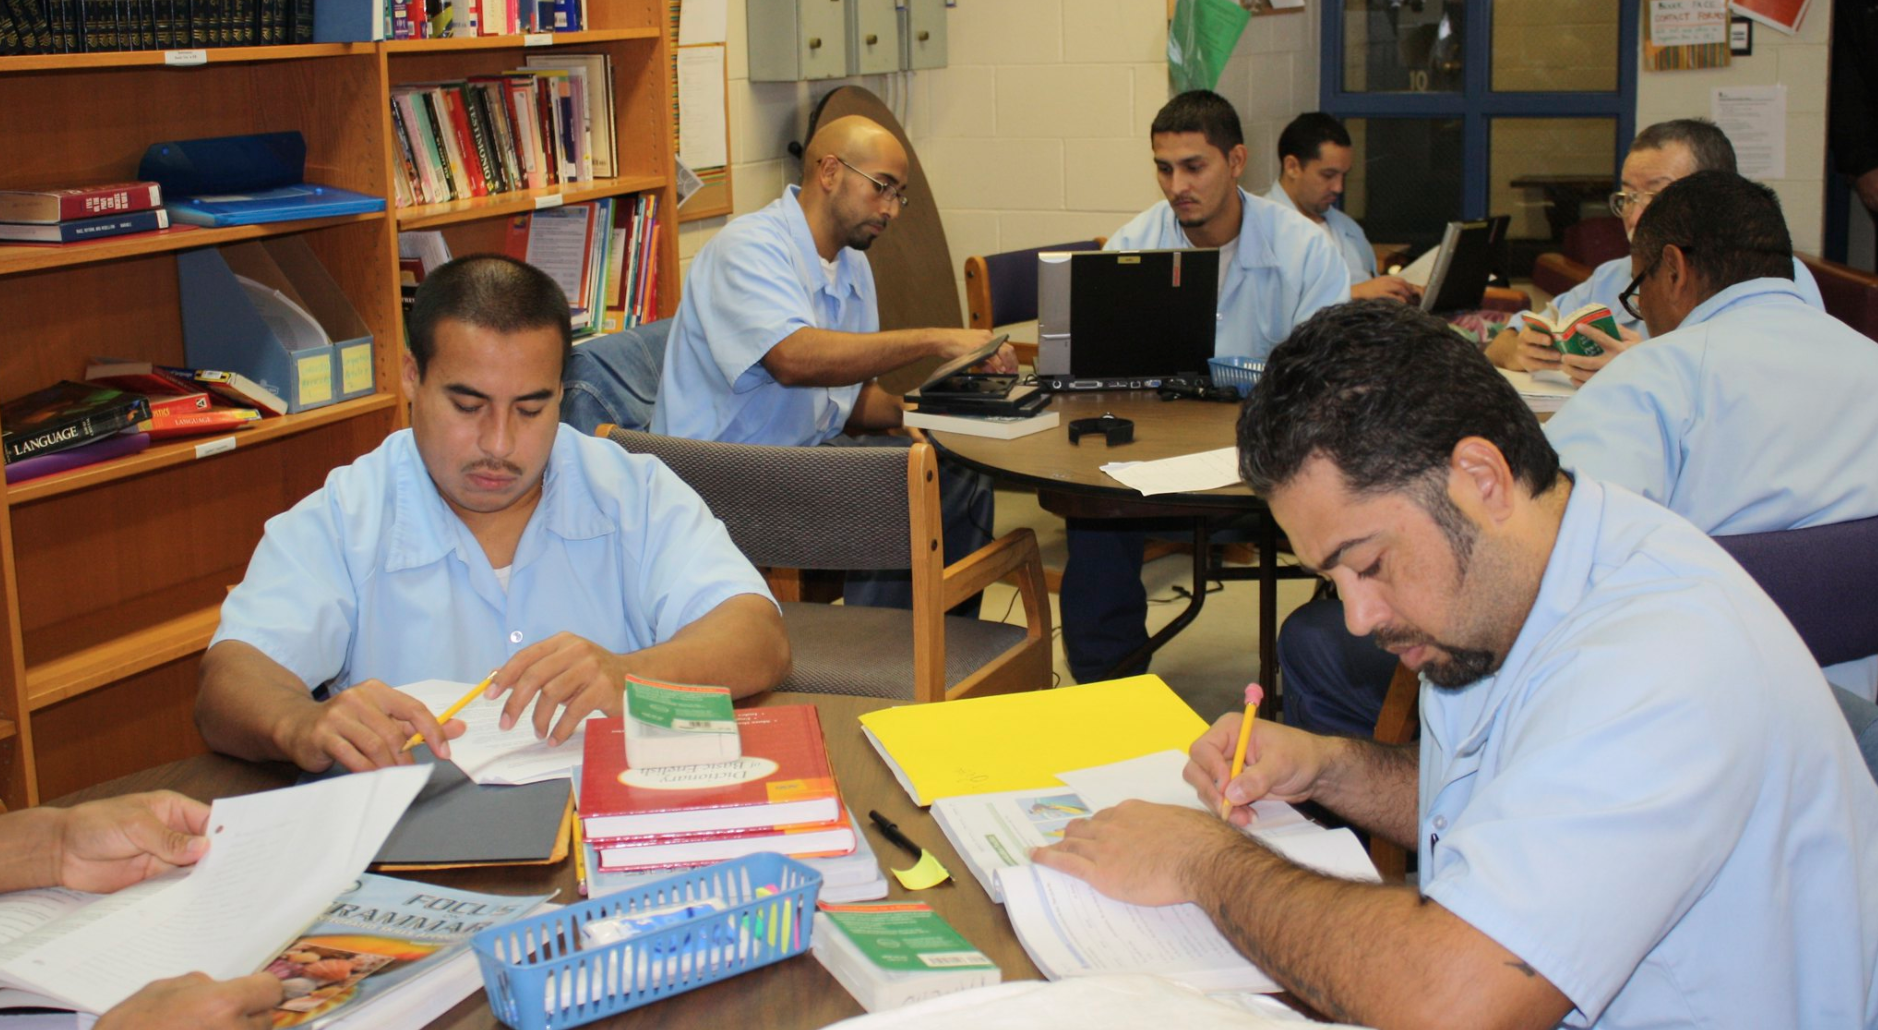 - Incarcerated men working inside the Education Justice Project library at the Danville Correctional Center